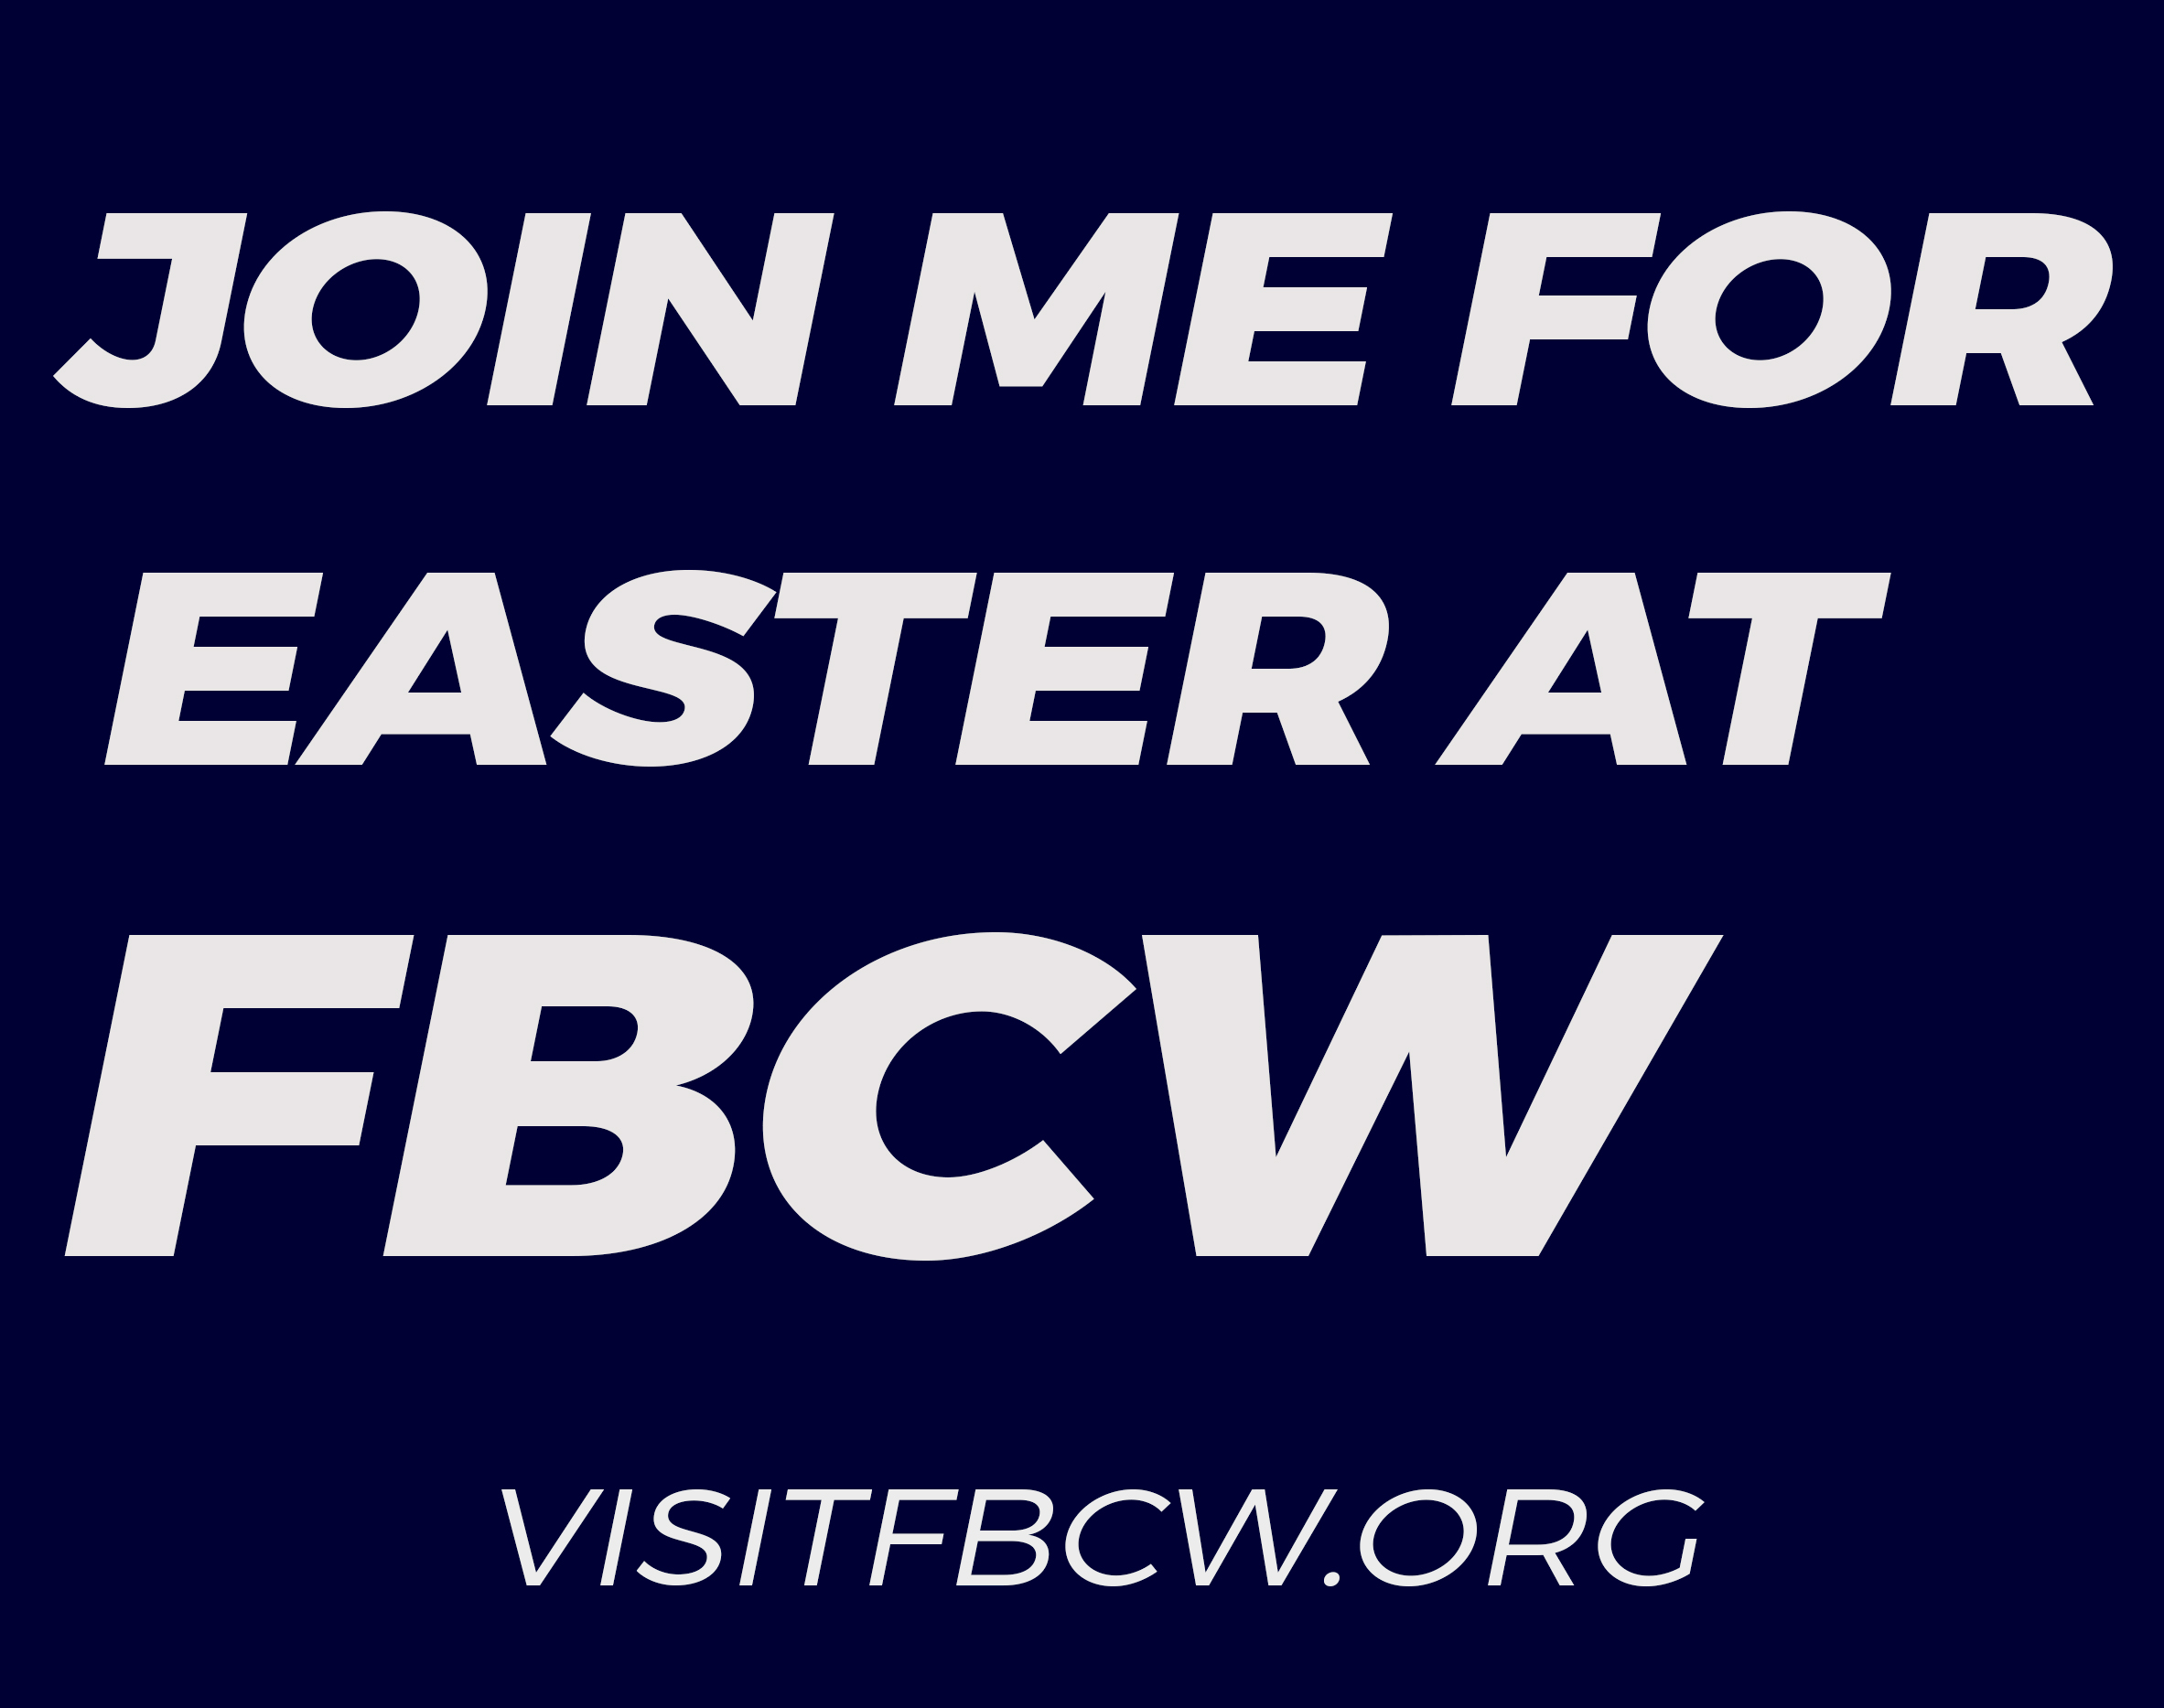 Join me for Easter